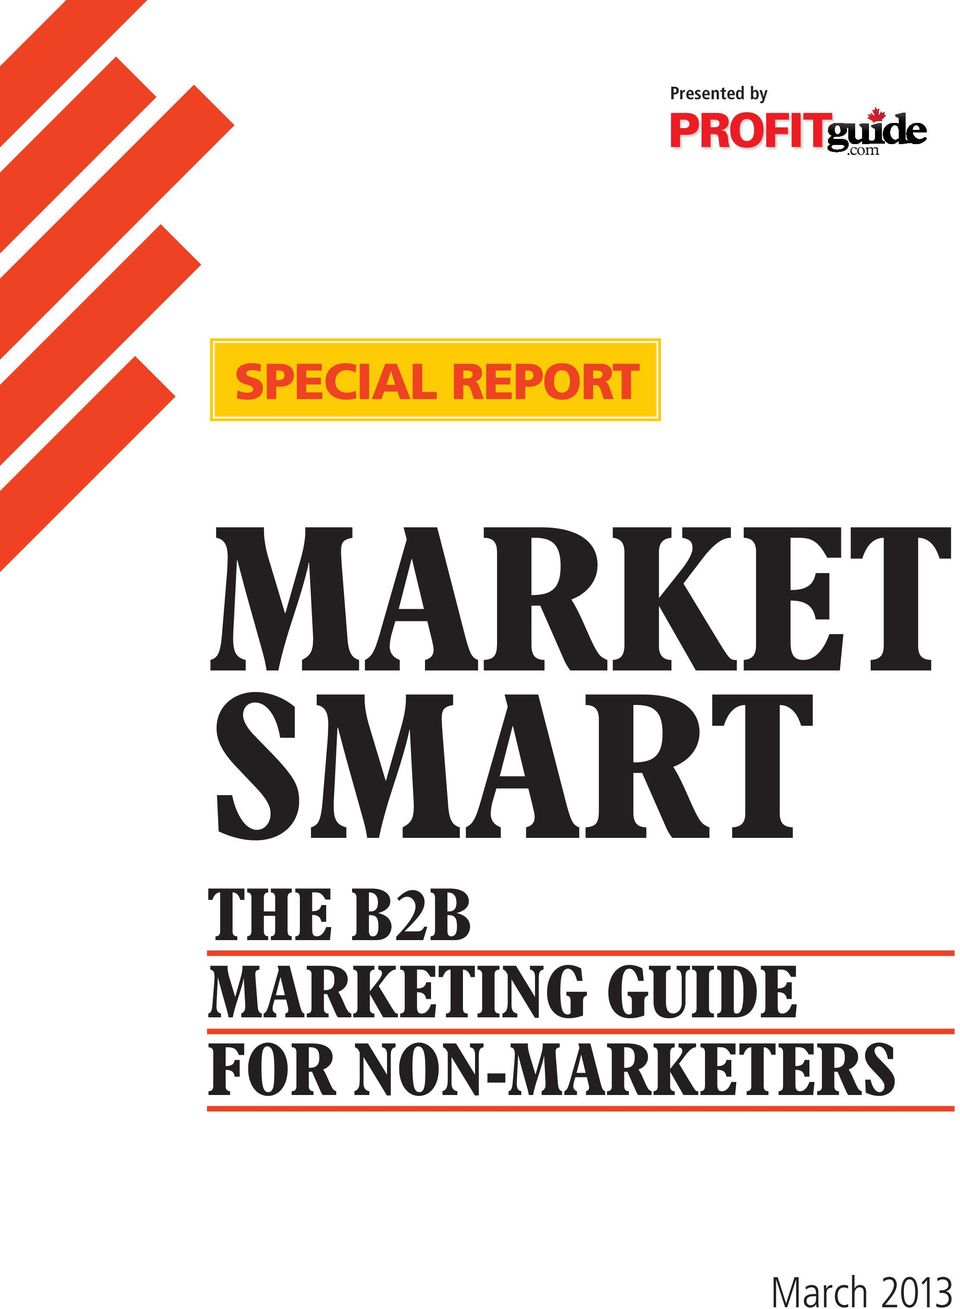 B2B MARKETING GUIDE FOR